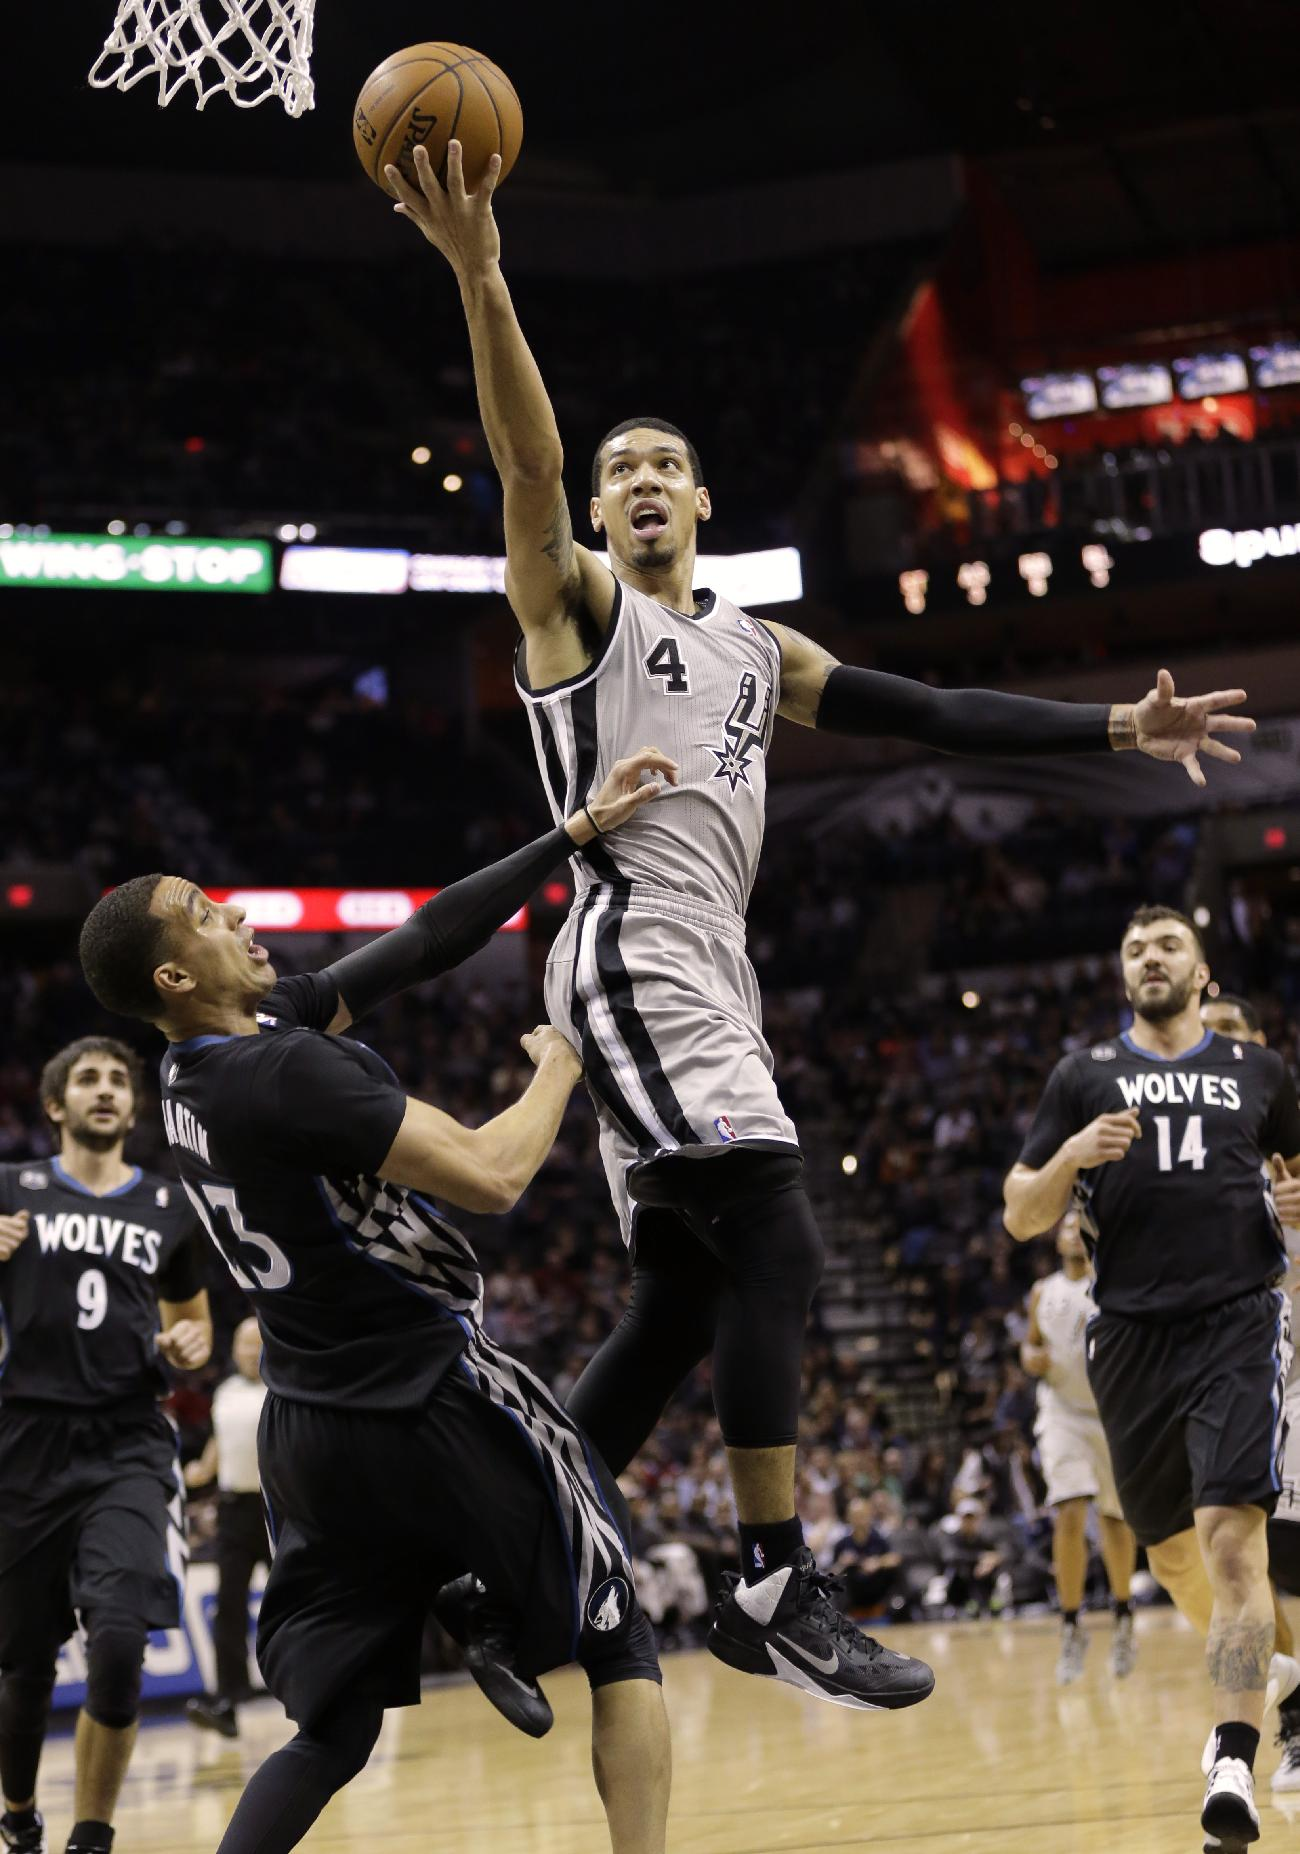 San Antonio Spurs' Danny Green (4) shoots over Minnesota Timberwolves' Kevin Martin (23) during the first half on an NBA basketball game, Sunday, Jan. 12, 2014, in San Antonio